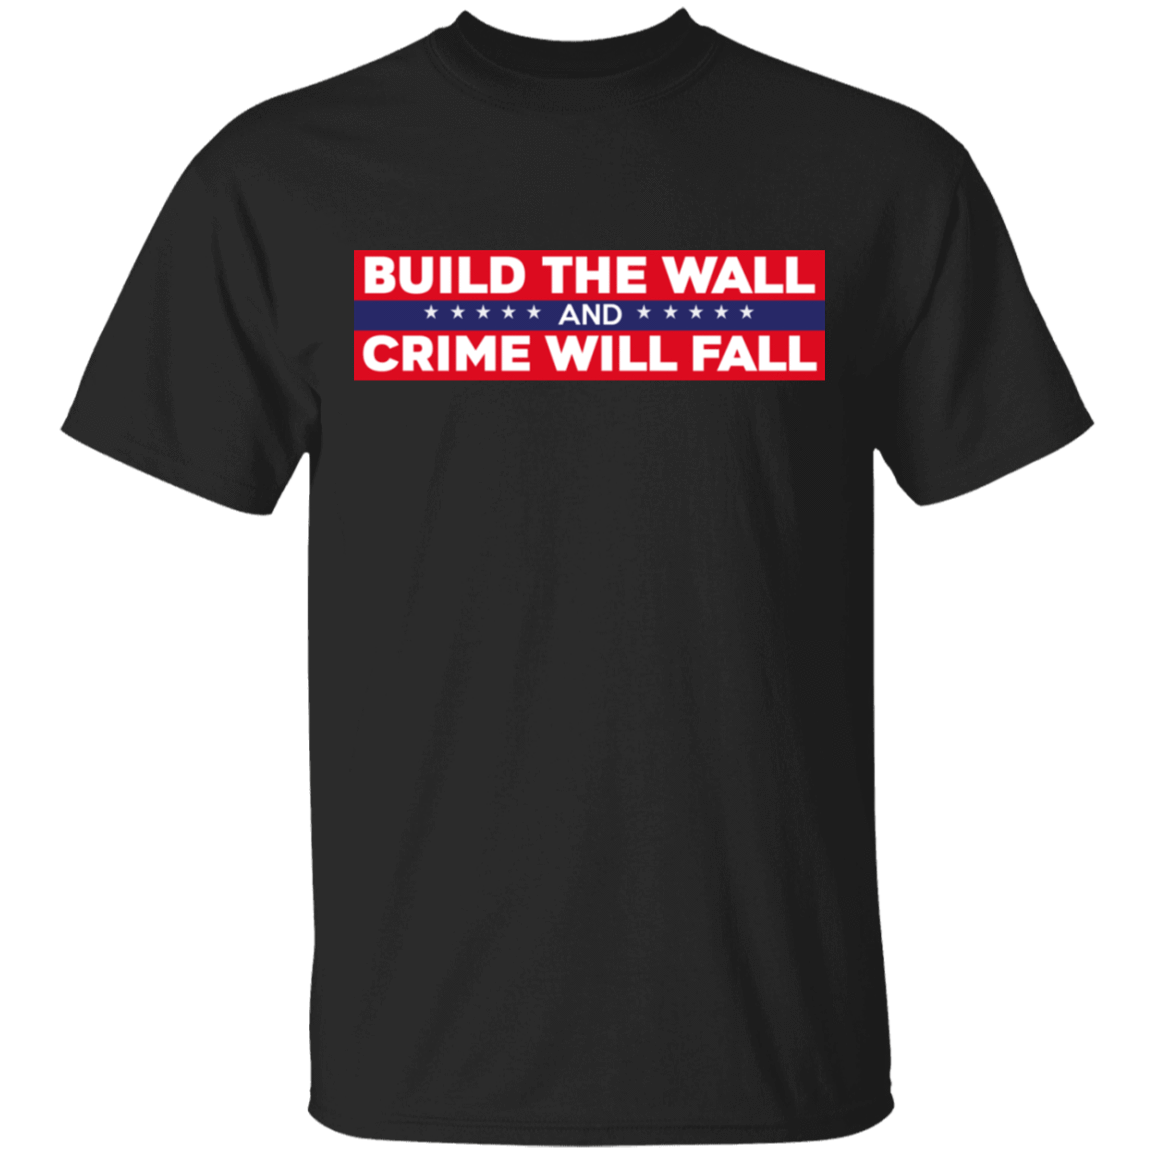 Build The Wall And Crime Will Fall Bumper T-Shirts, Hoodies, Tank 22-113-80184187-252 - Tee Ript